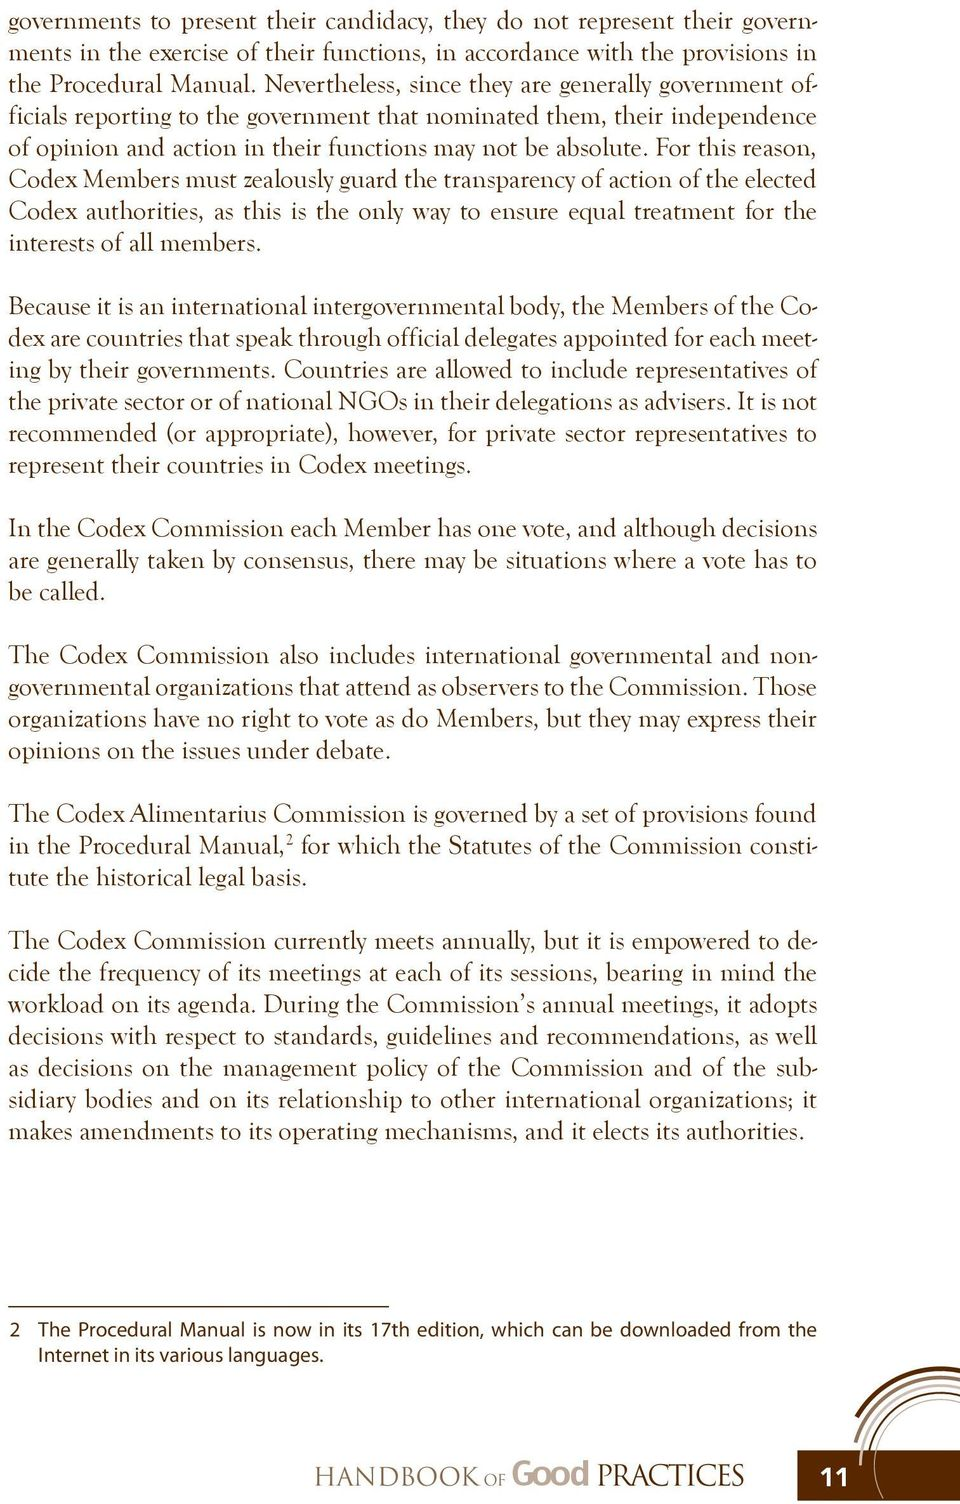 For this reason, Codex Members must zealously guard the transparency of action of the elected Codex authorities, as this is the only way to ensure equal treatment for the interests of all members.